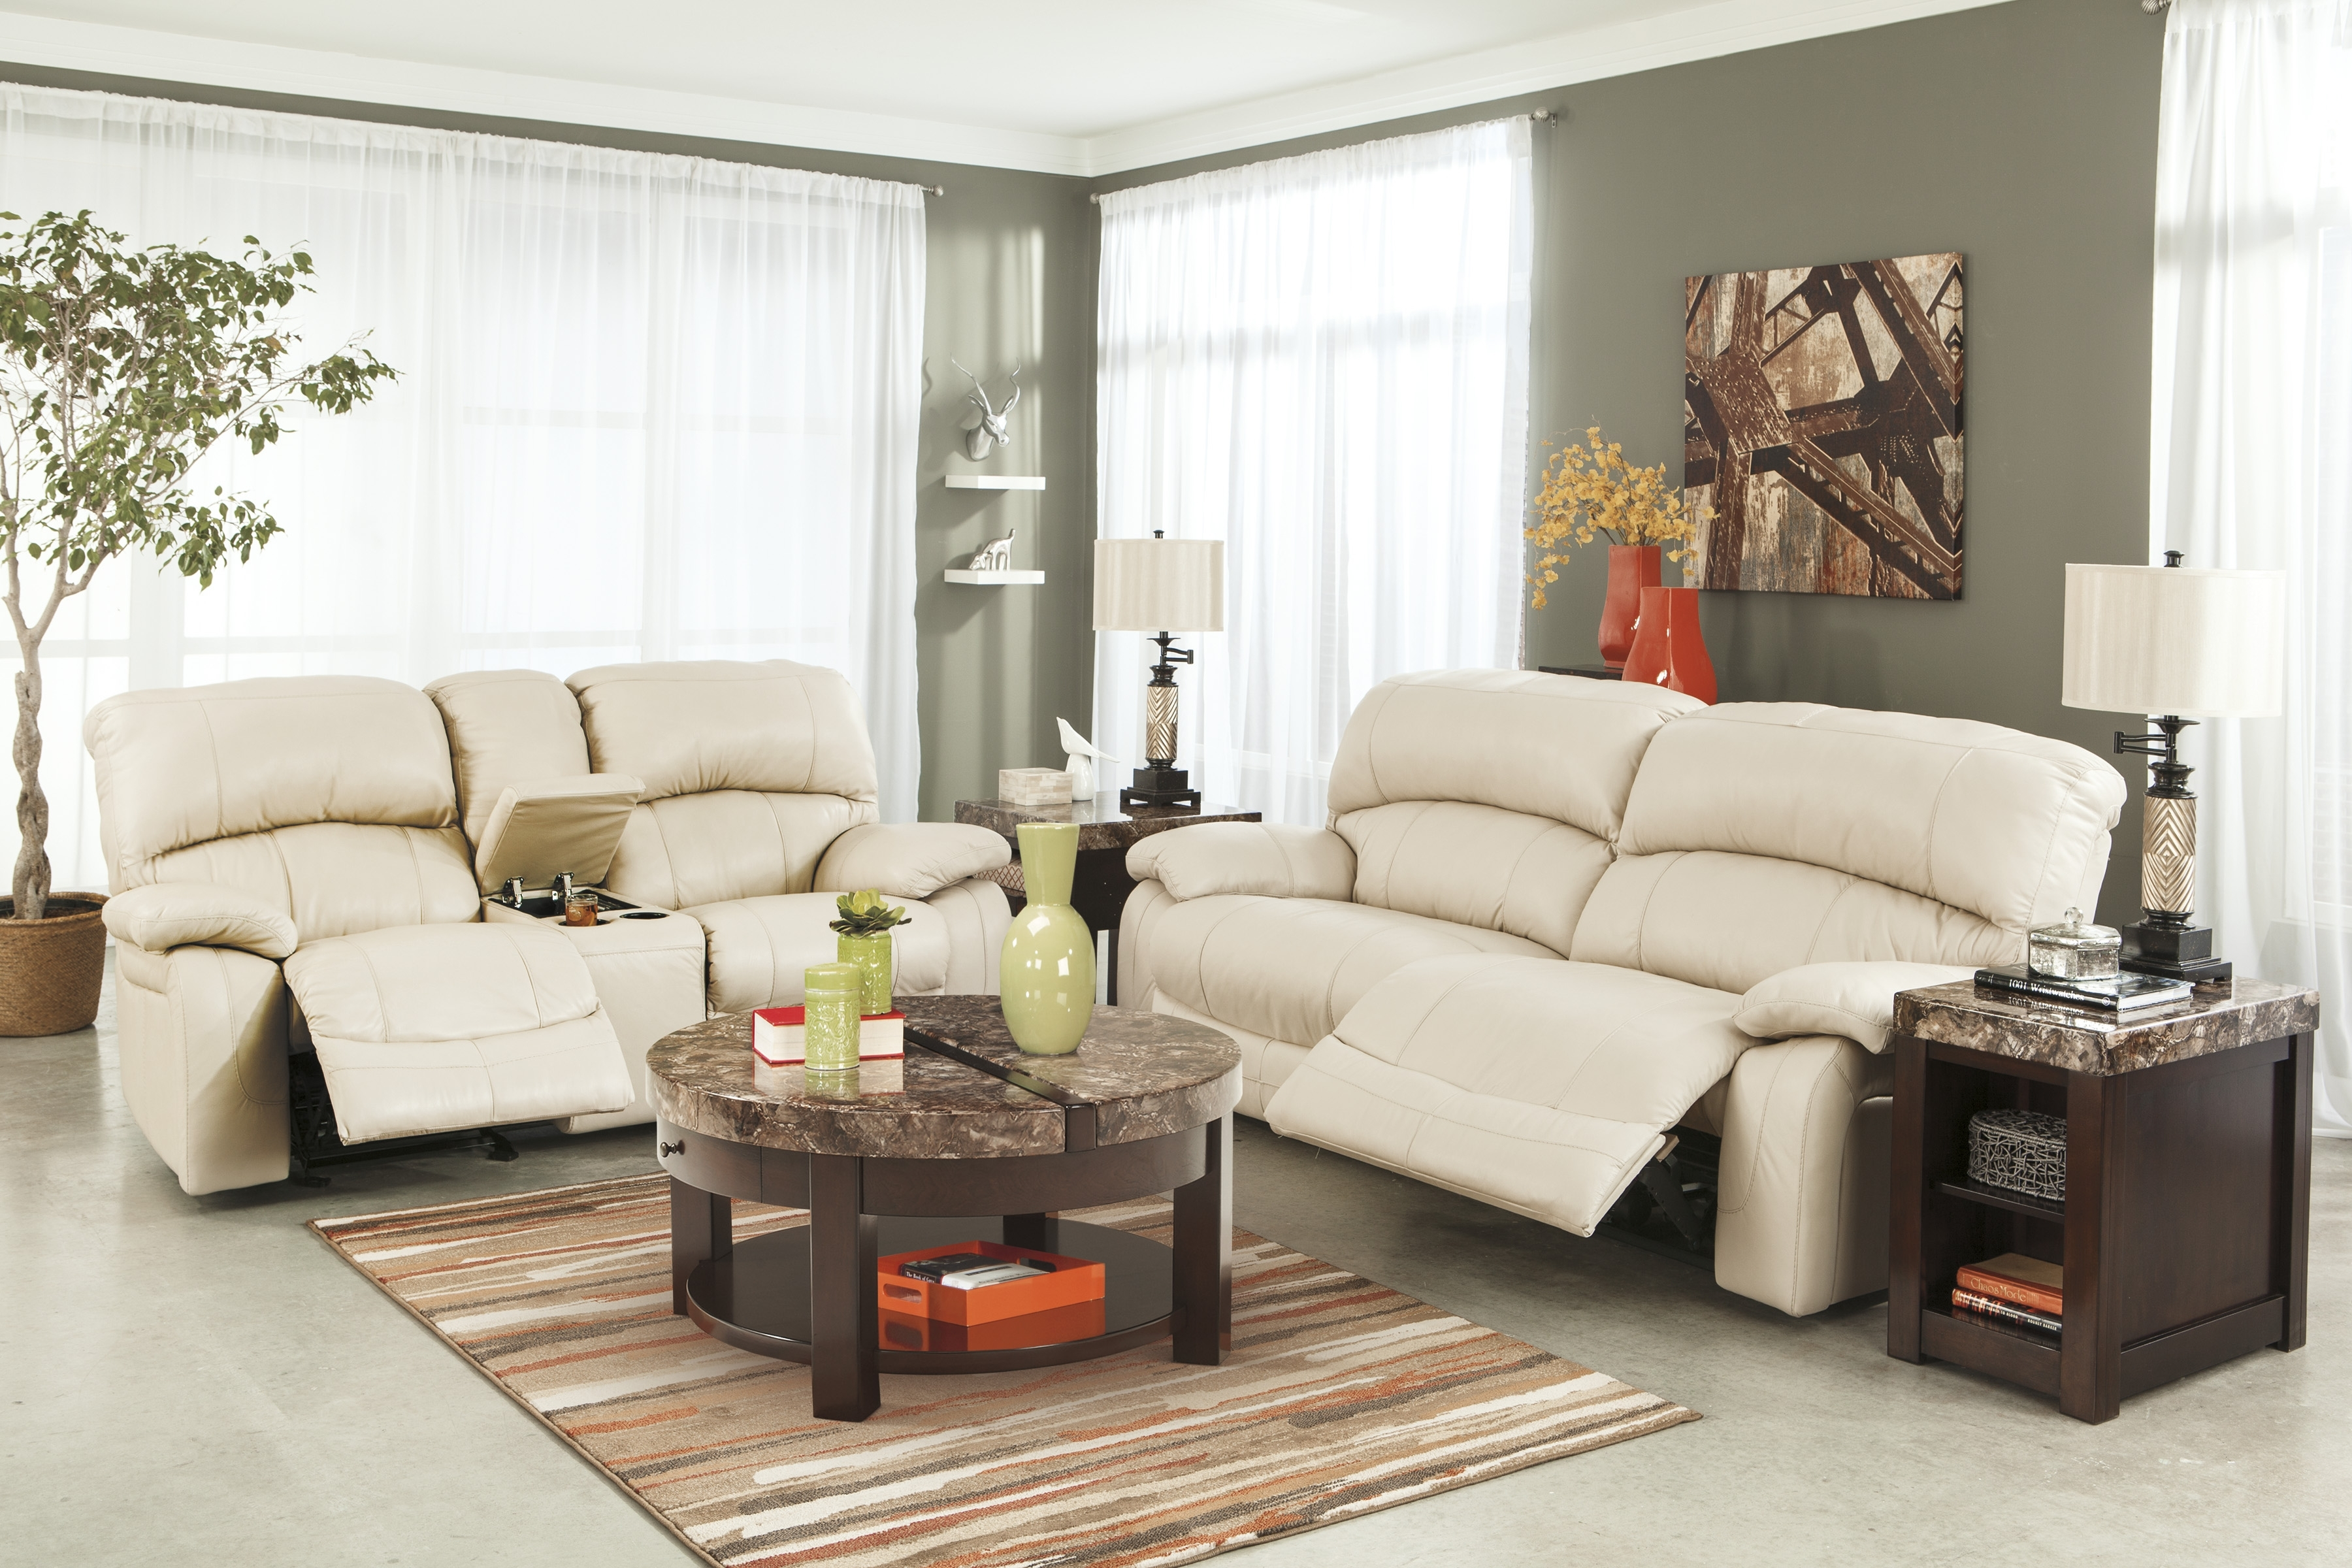 Cream Colored Sofas With Regard To Widely Used Cream Colored Sofa (View 6 of 20)